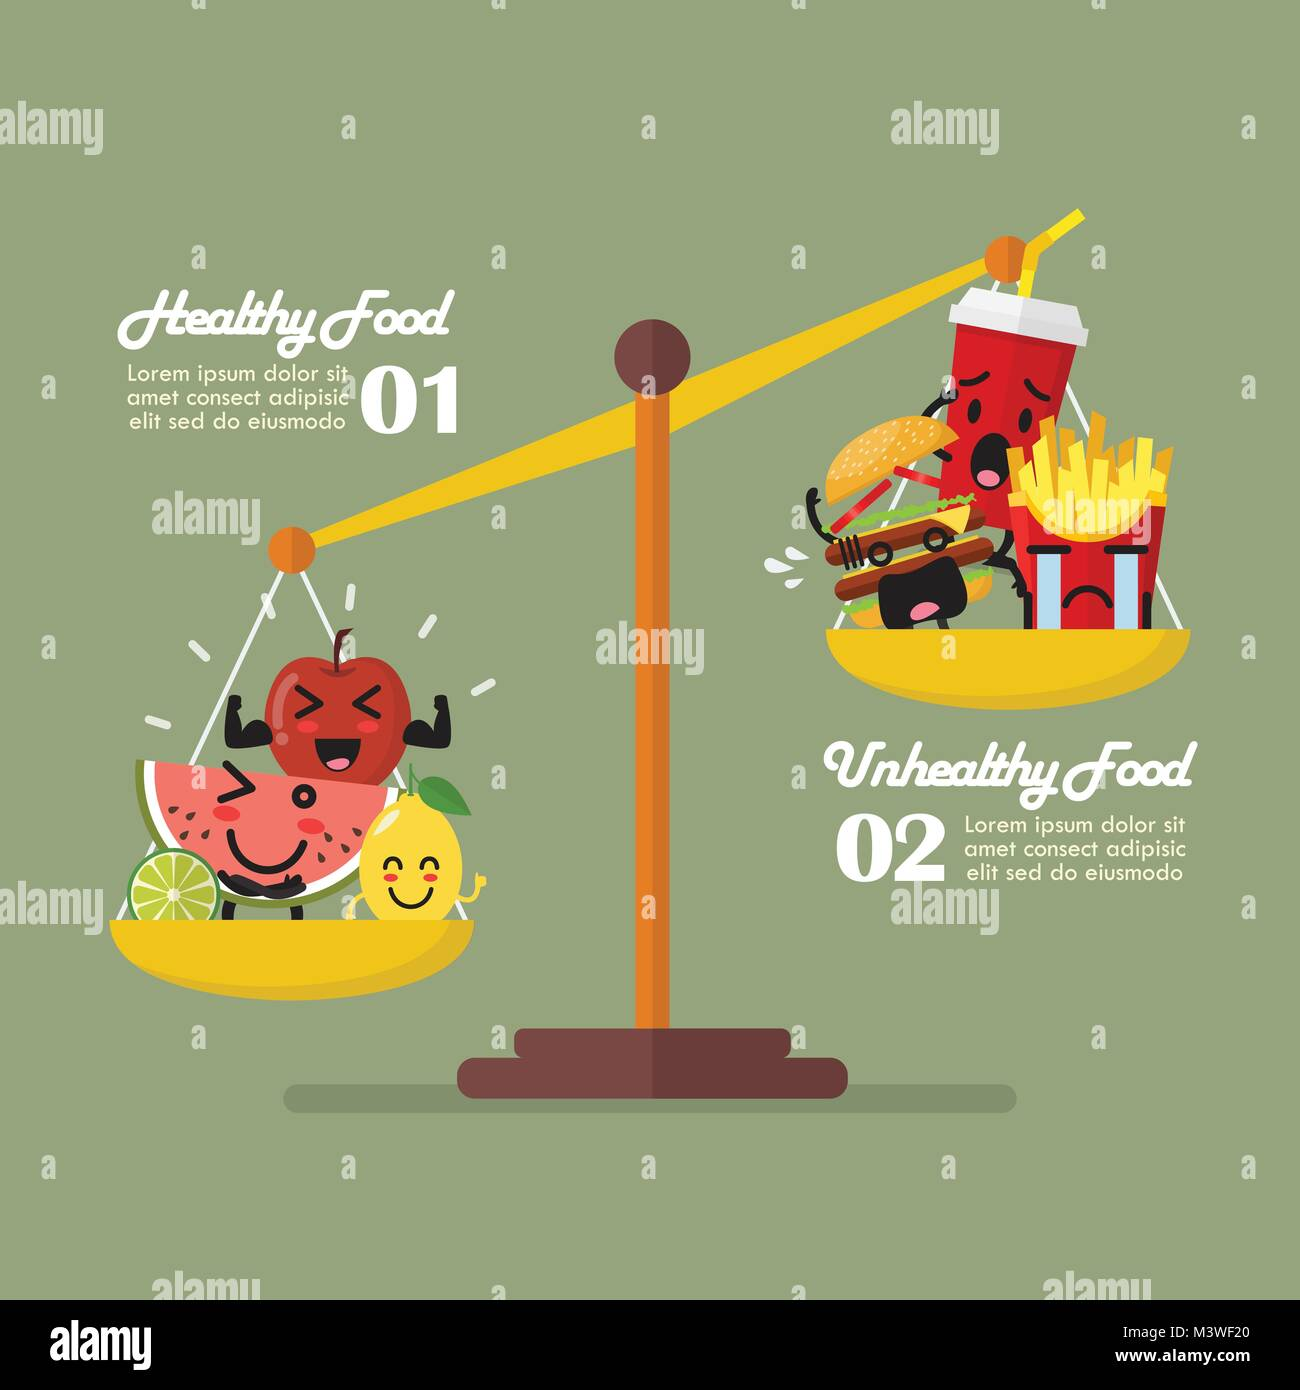 Healthy food and junk food balancing on scales infographic. healthy lifestyle concept - Stock Vector